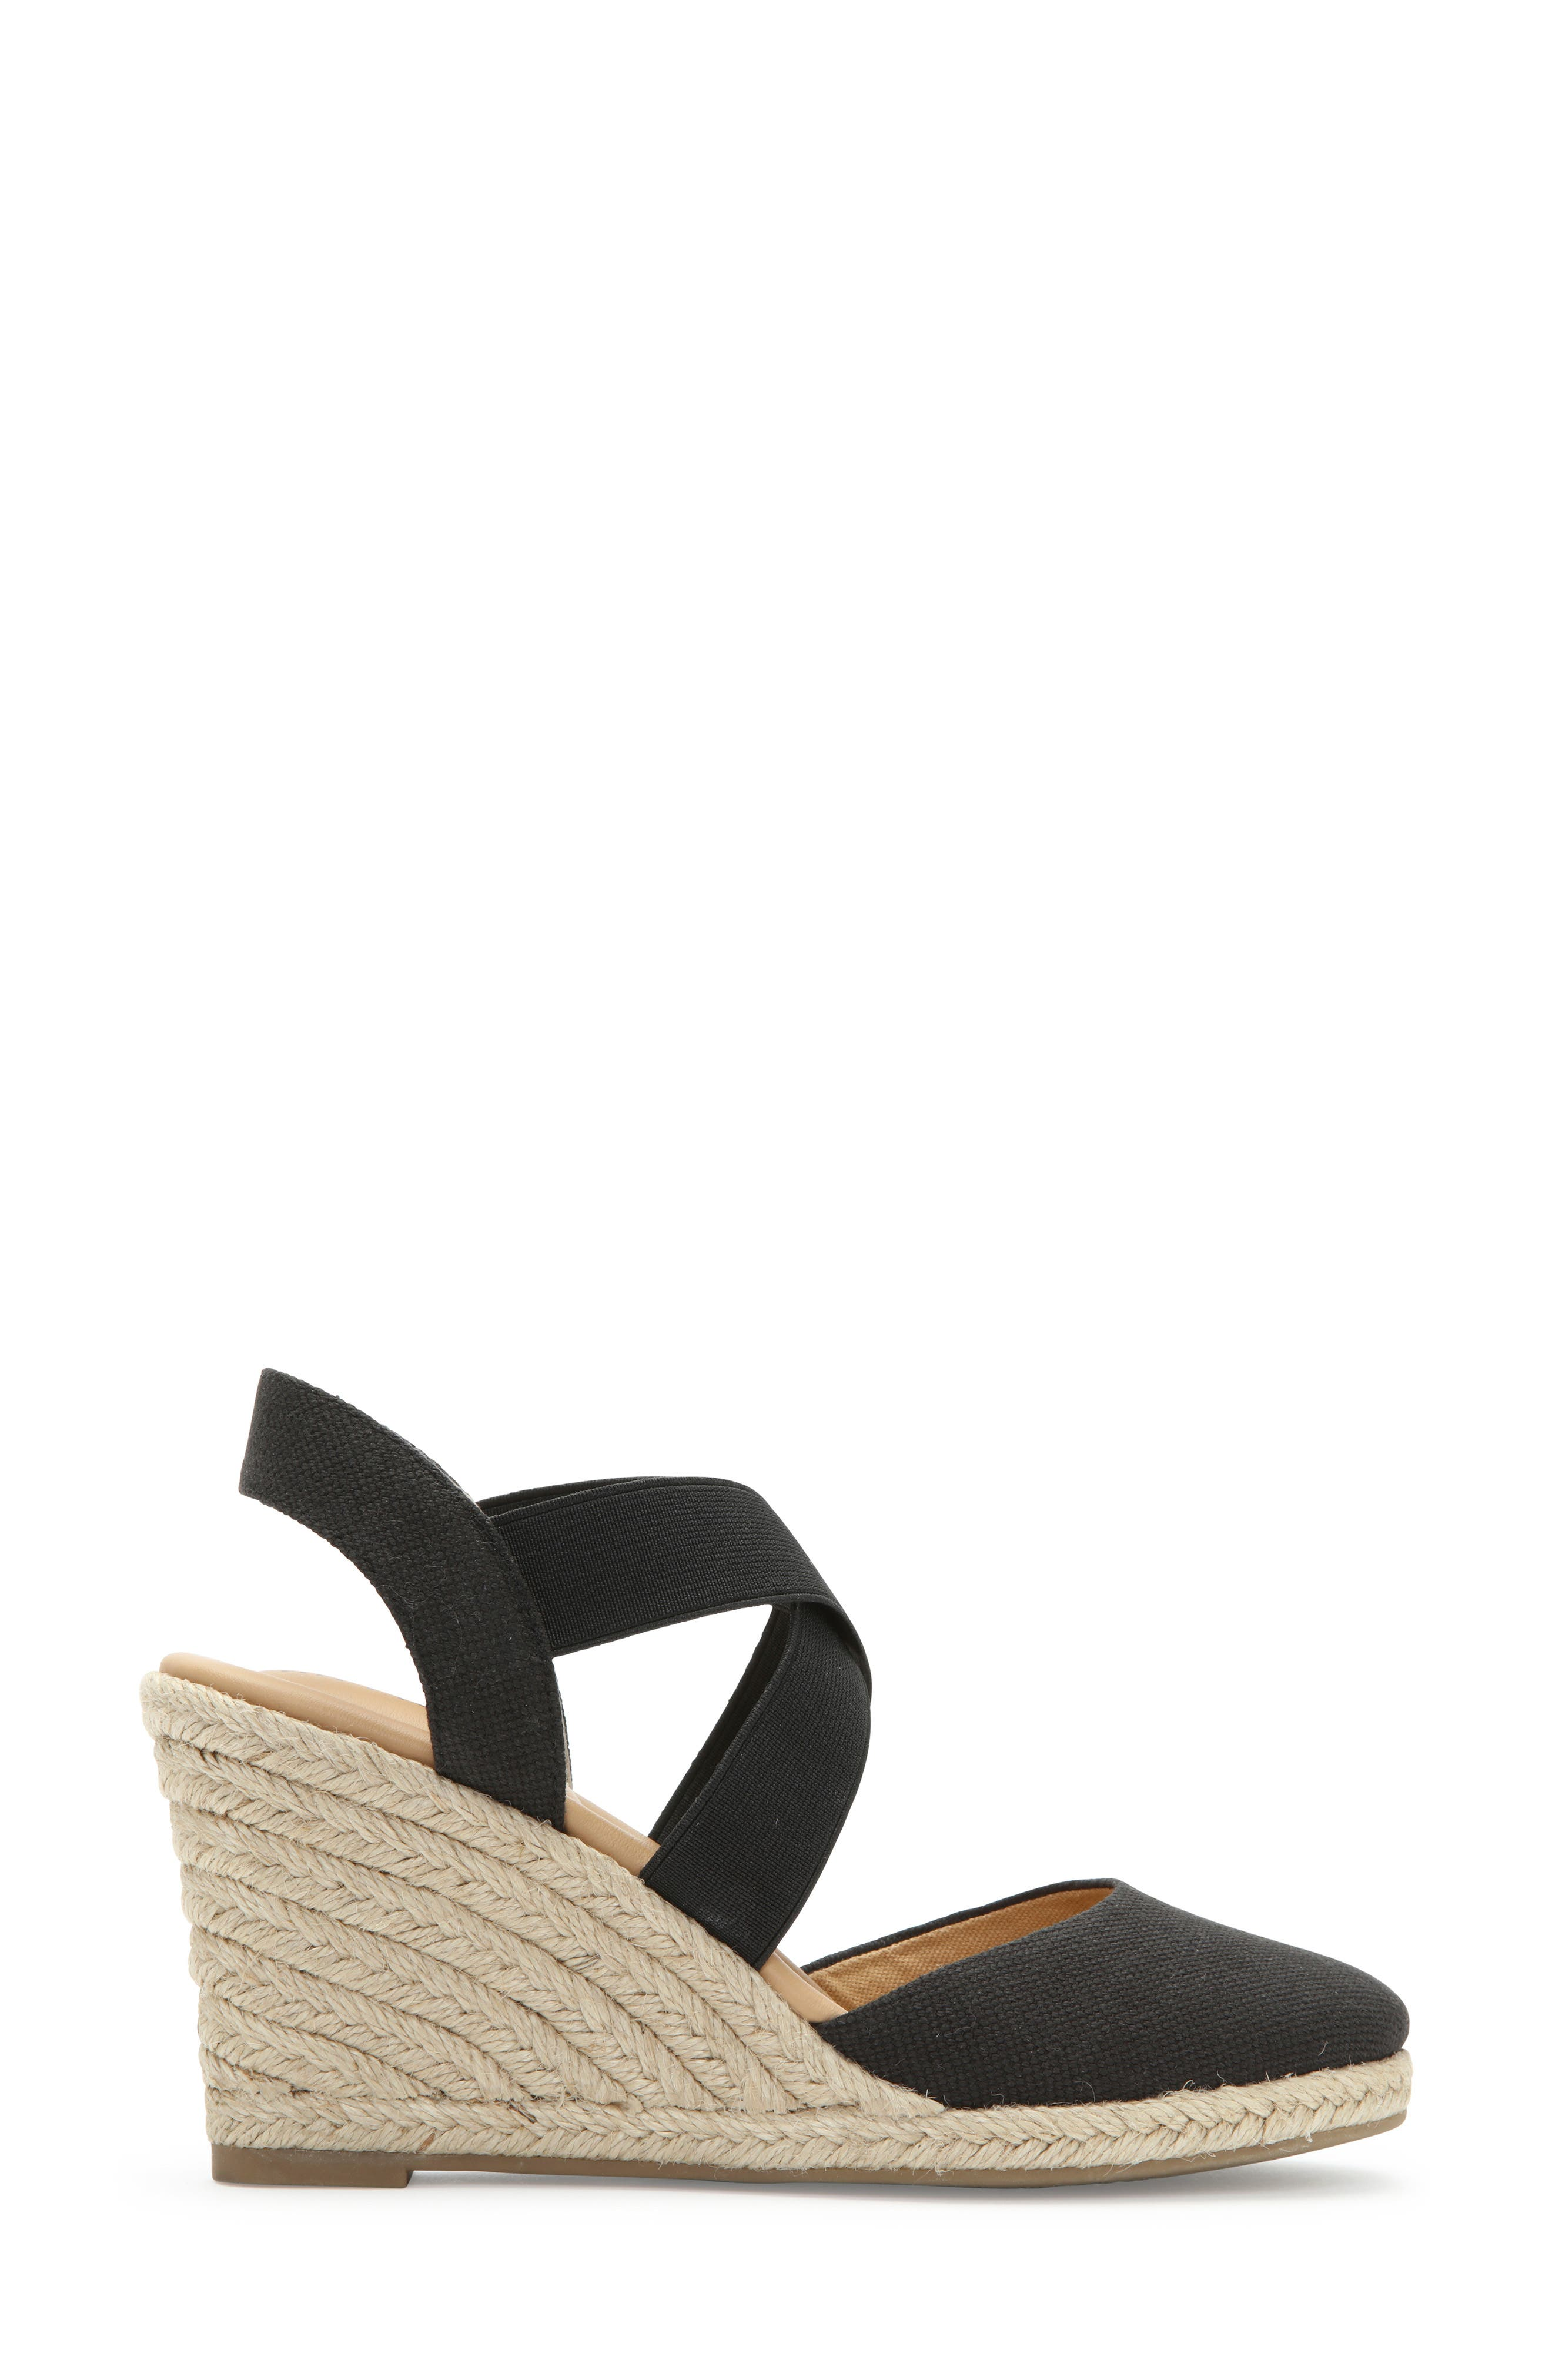 ME TOO, Brinley Espadrille Wedge, Alternate thumbnail 3, color, BLACK CANVAS